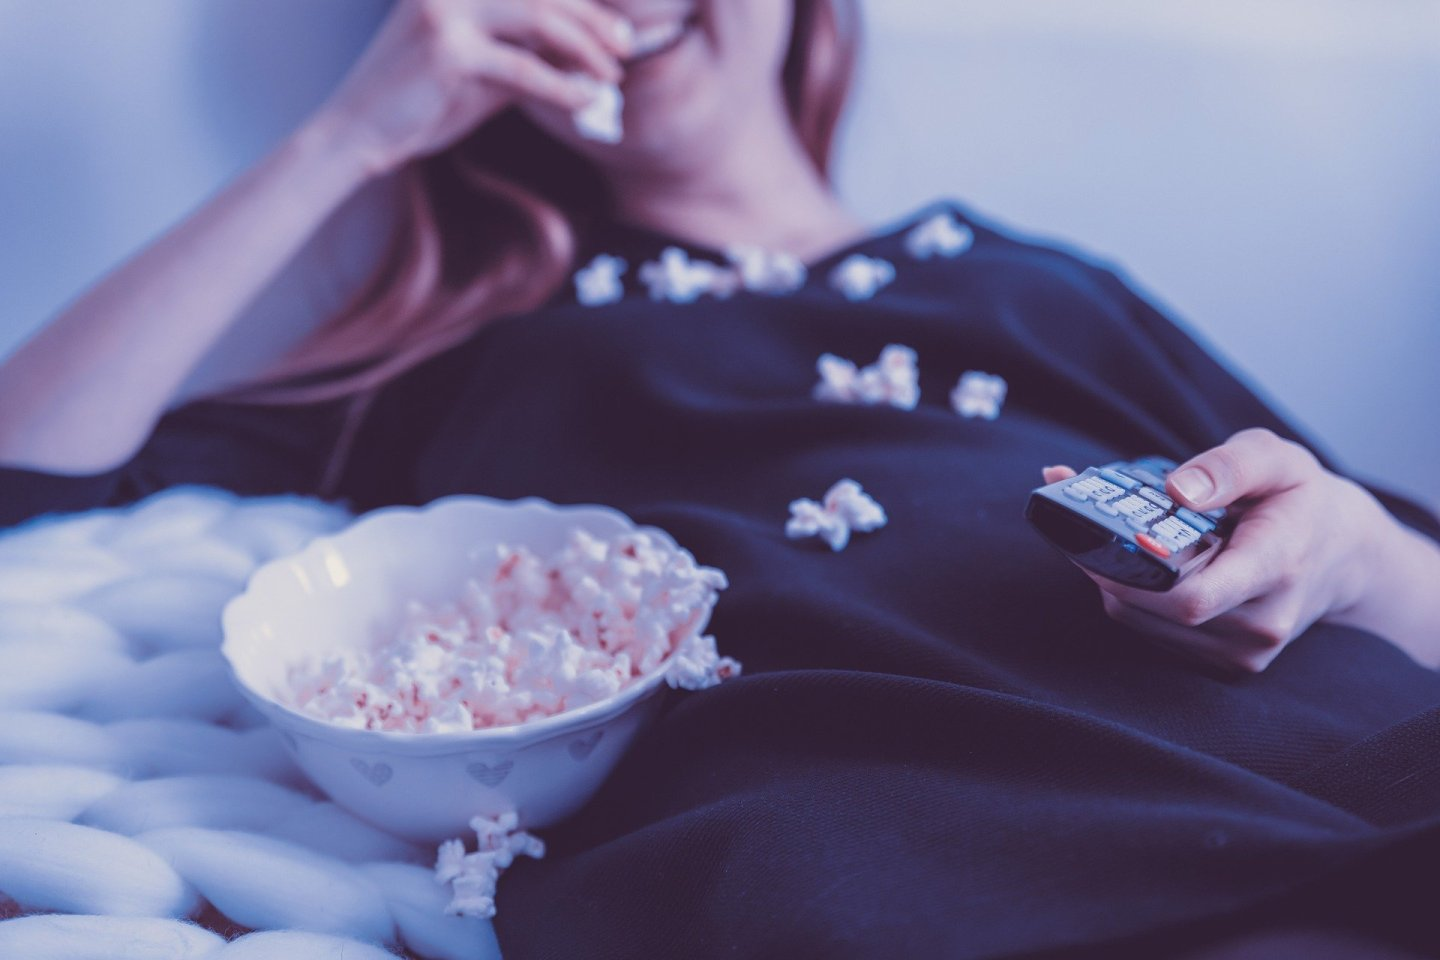 A woman smiling, holding a remote control watching the TV and eating popcorn, with popcorn all down her jumper.